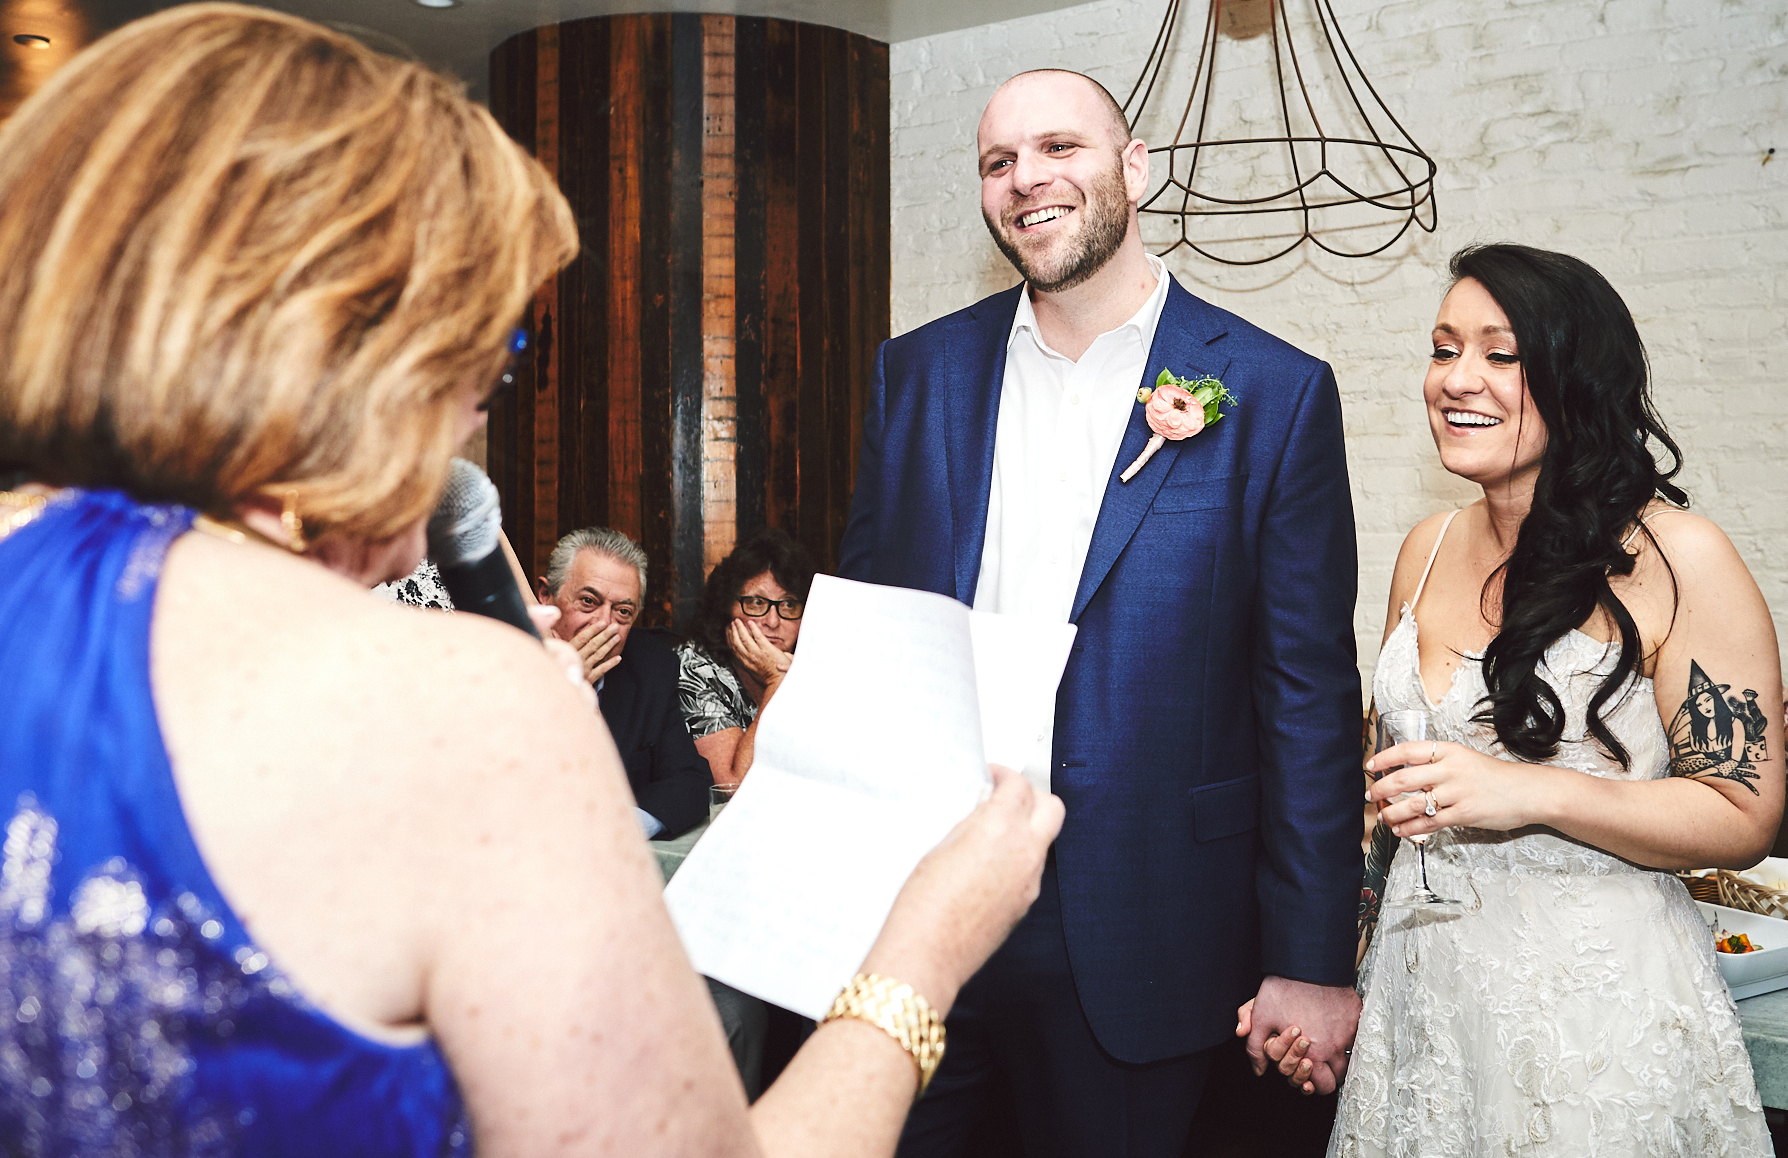 190518_SpringThreesBreweryWedding_By_BriJohnsonWeddings_0109.jpg